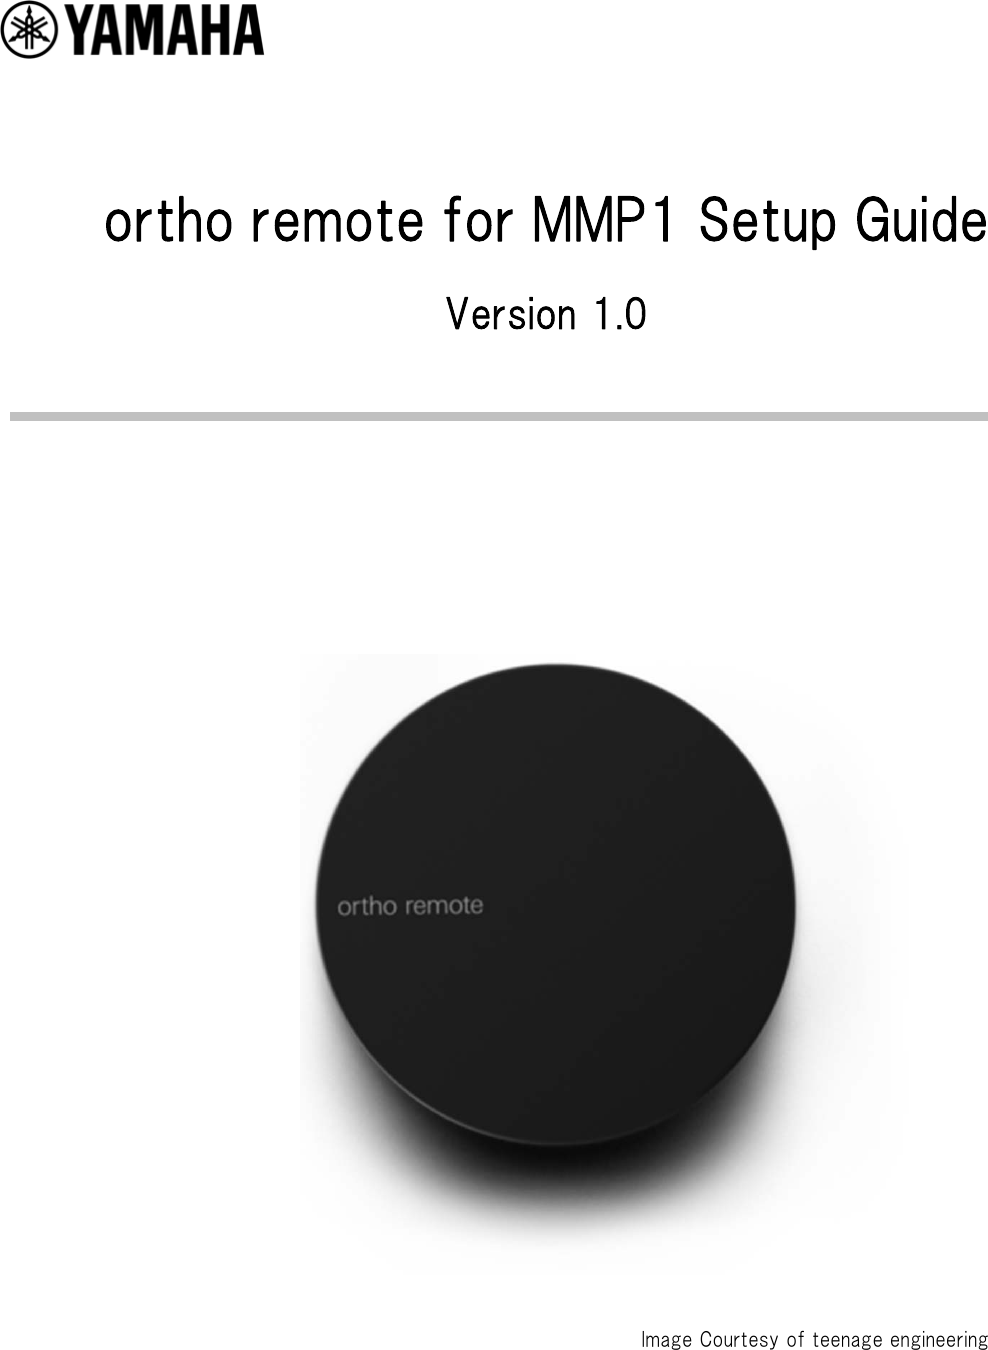 Yamaha Ortho Remote For MMP1 Setup Guide